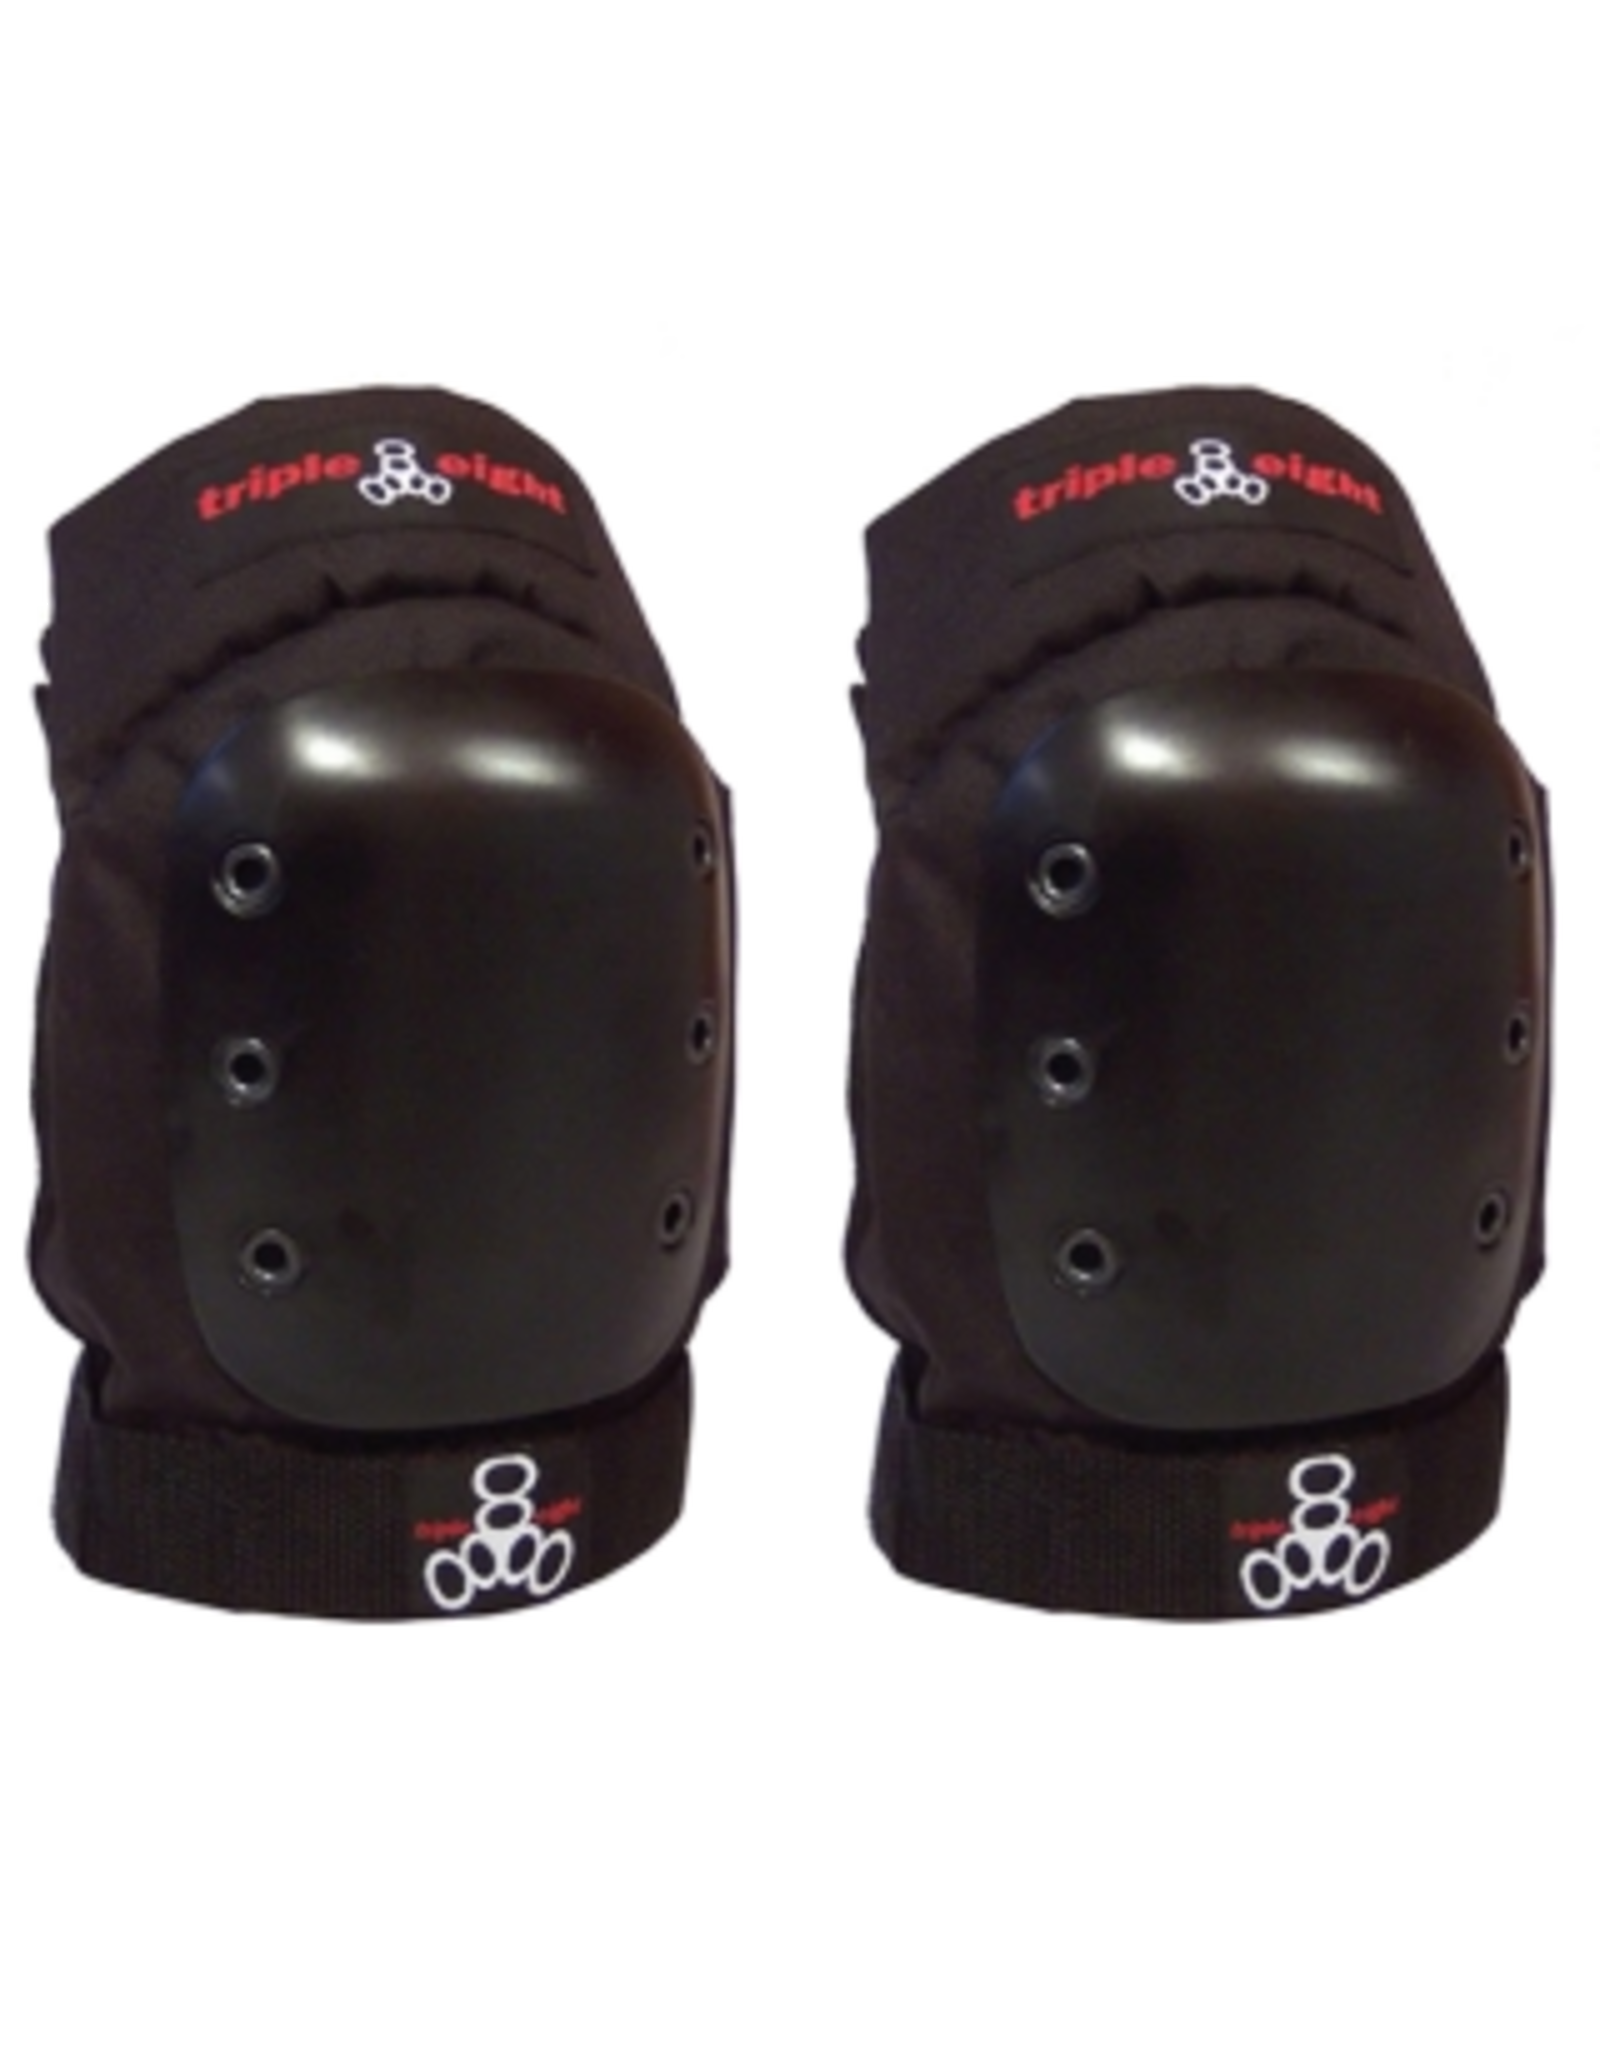 Triple 8 Triple 8 KP22 Knee Pad